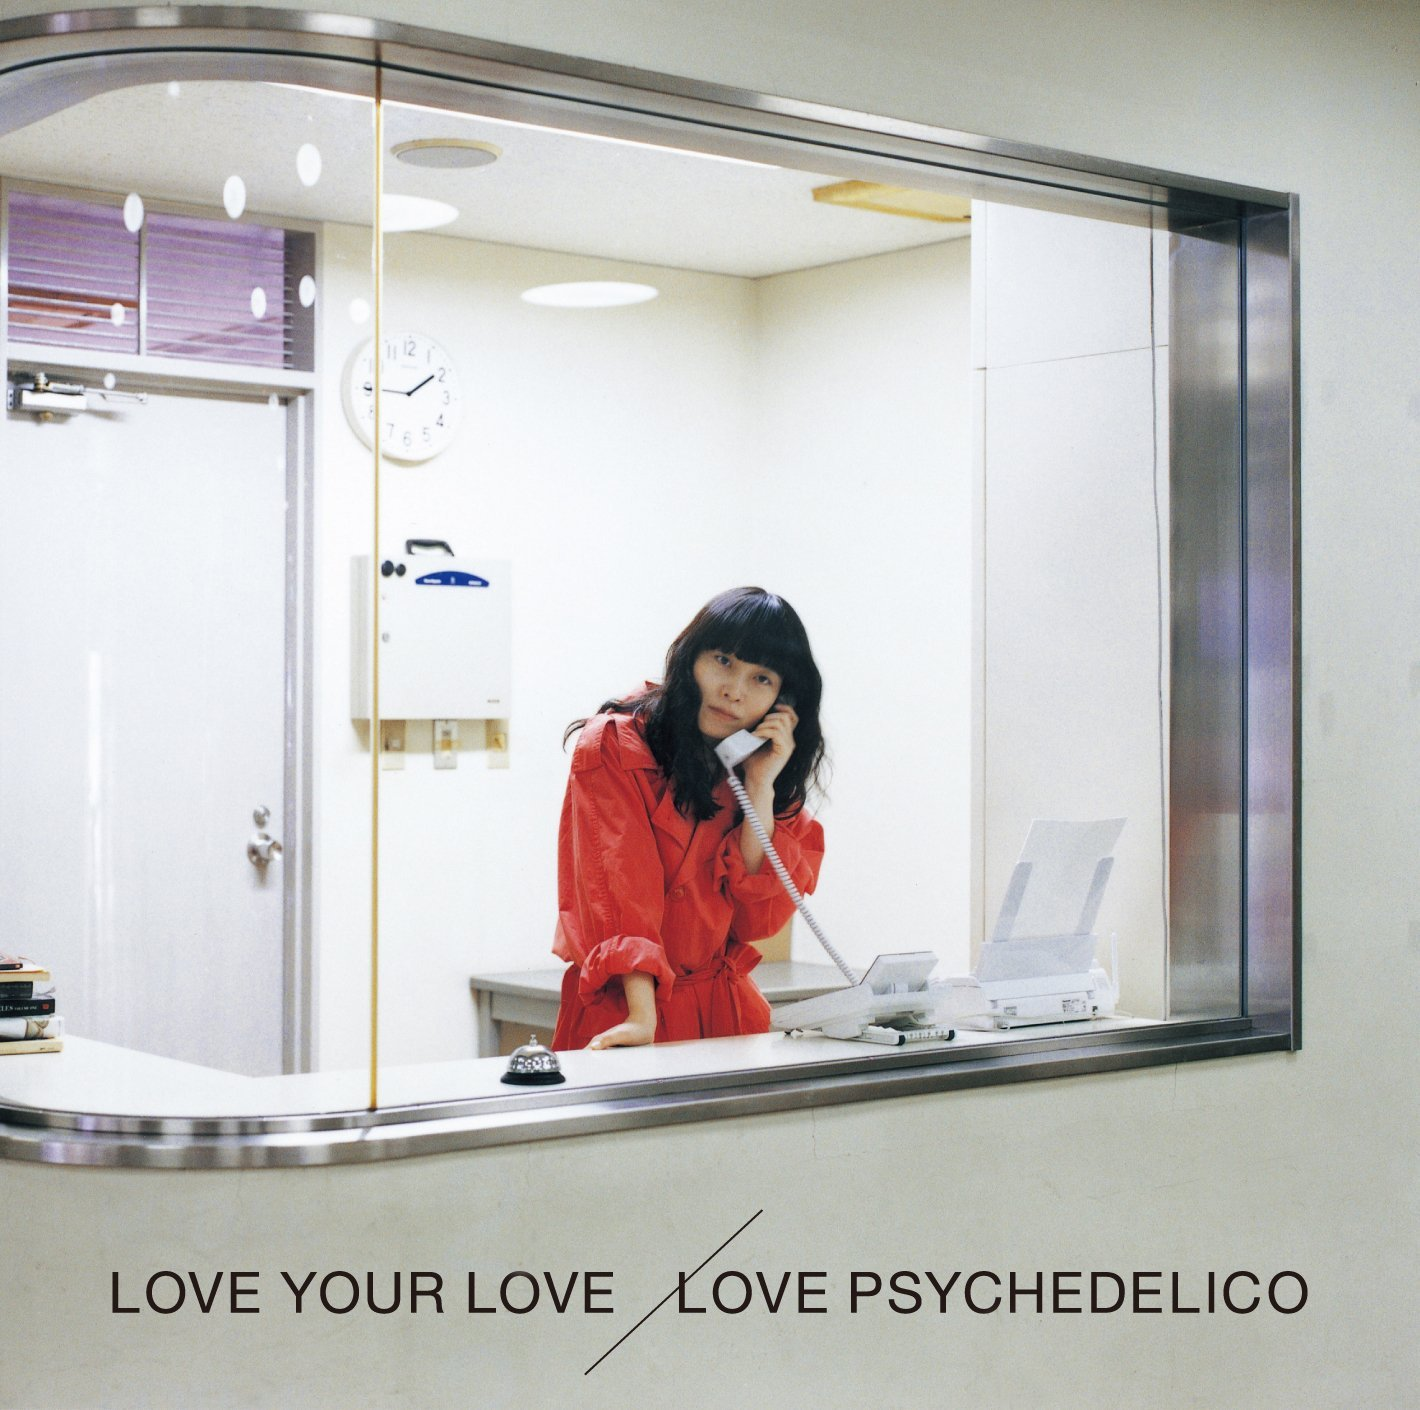 20170803.0245.04 Love Psychedelico - Love Your Love (FLAC) cover.jpg